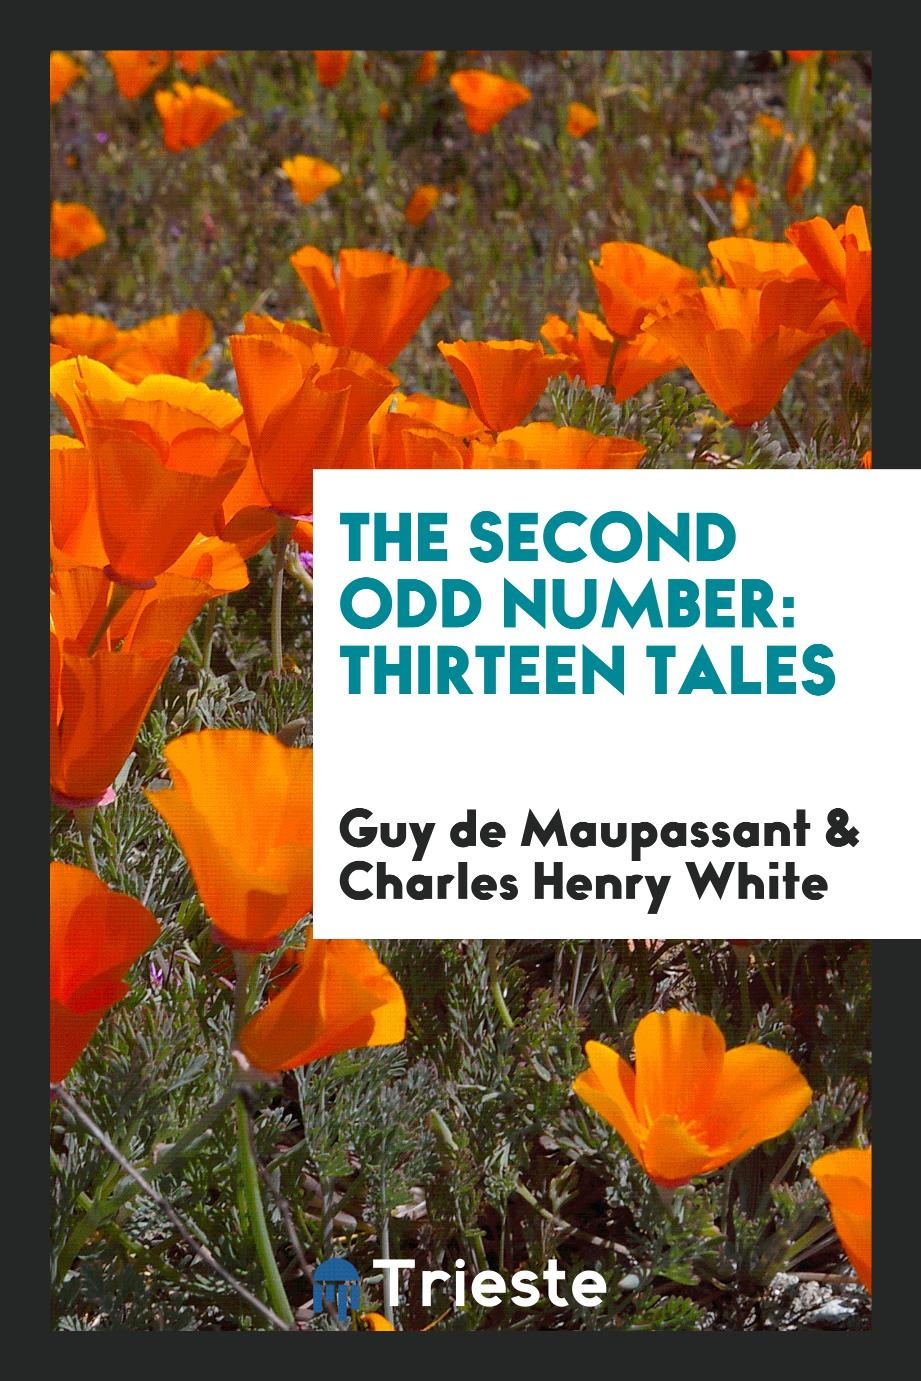 The second odd number: thirteen tales